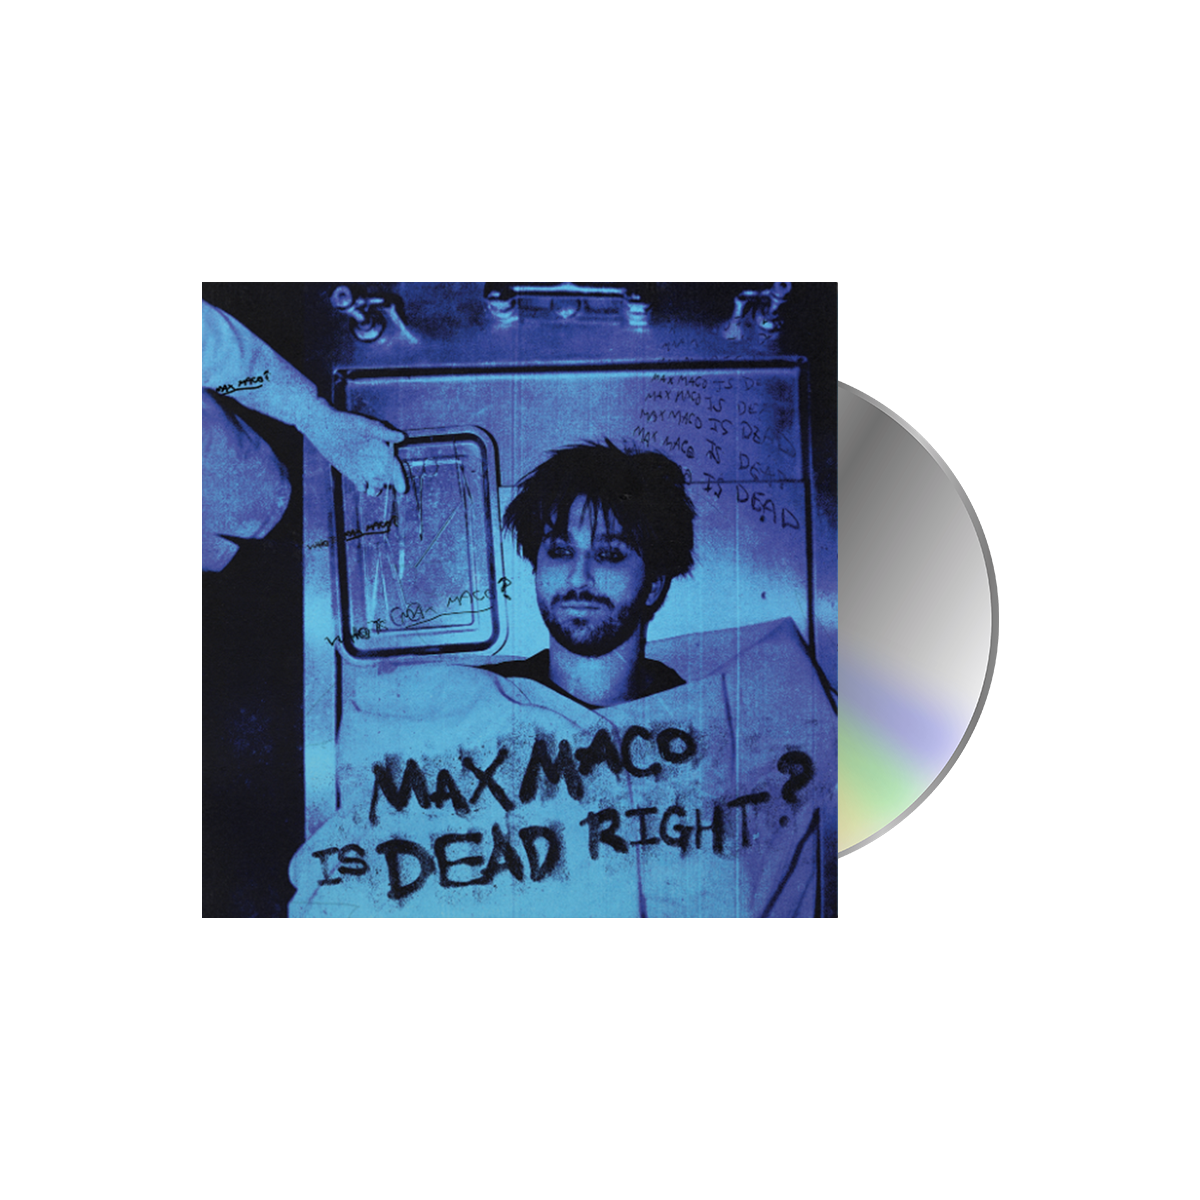 Max Maco Is Dead Right? - CD